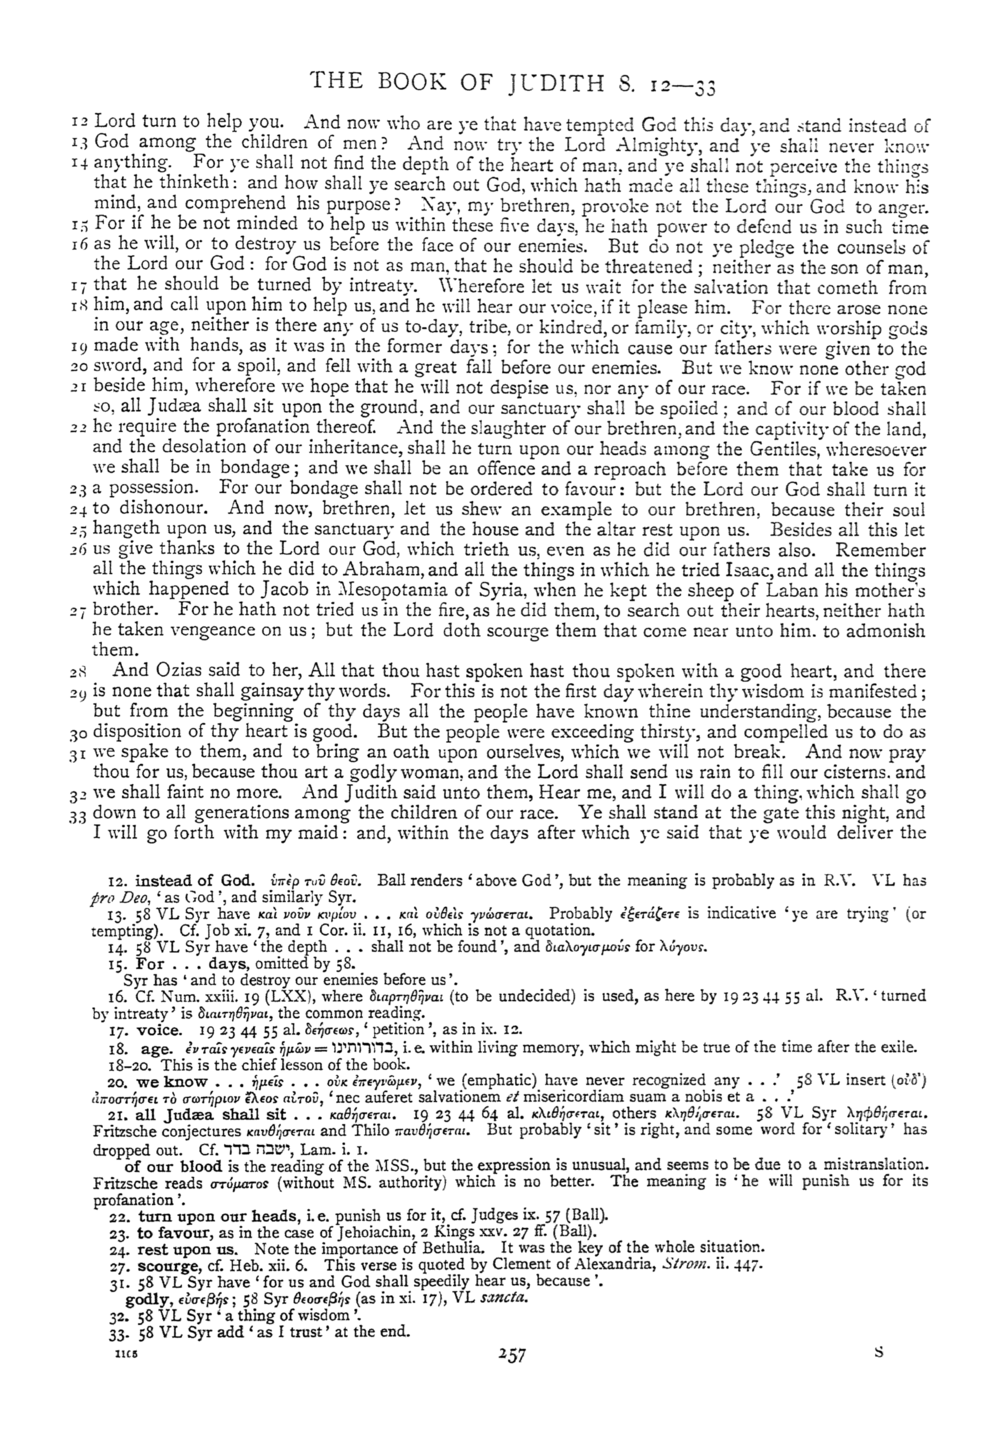 Image of page 257